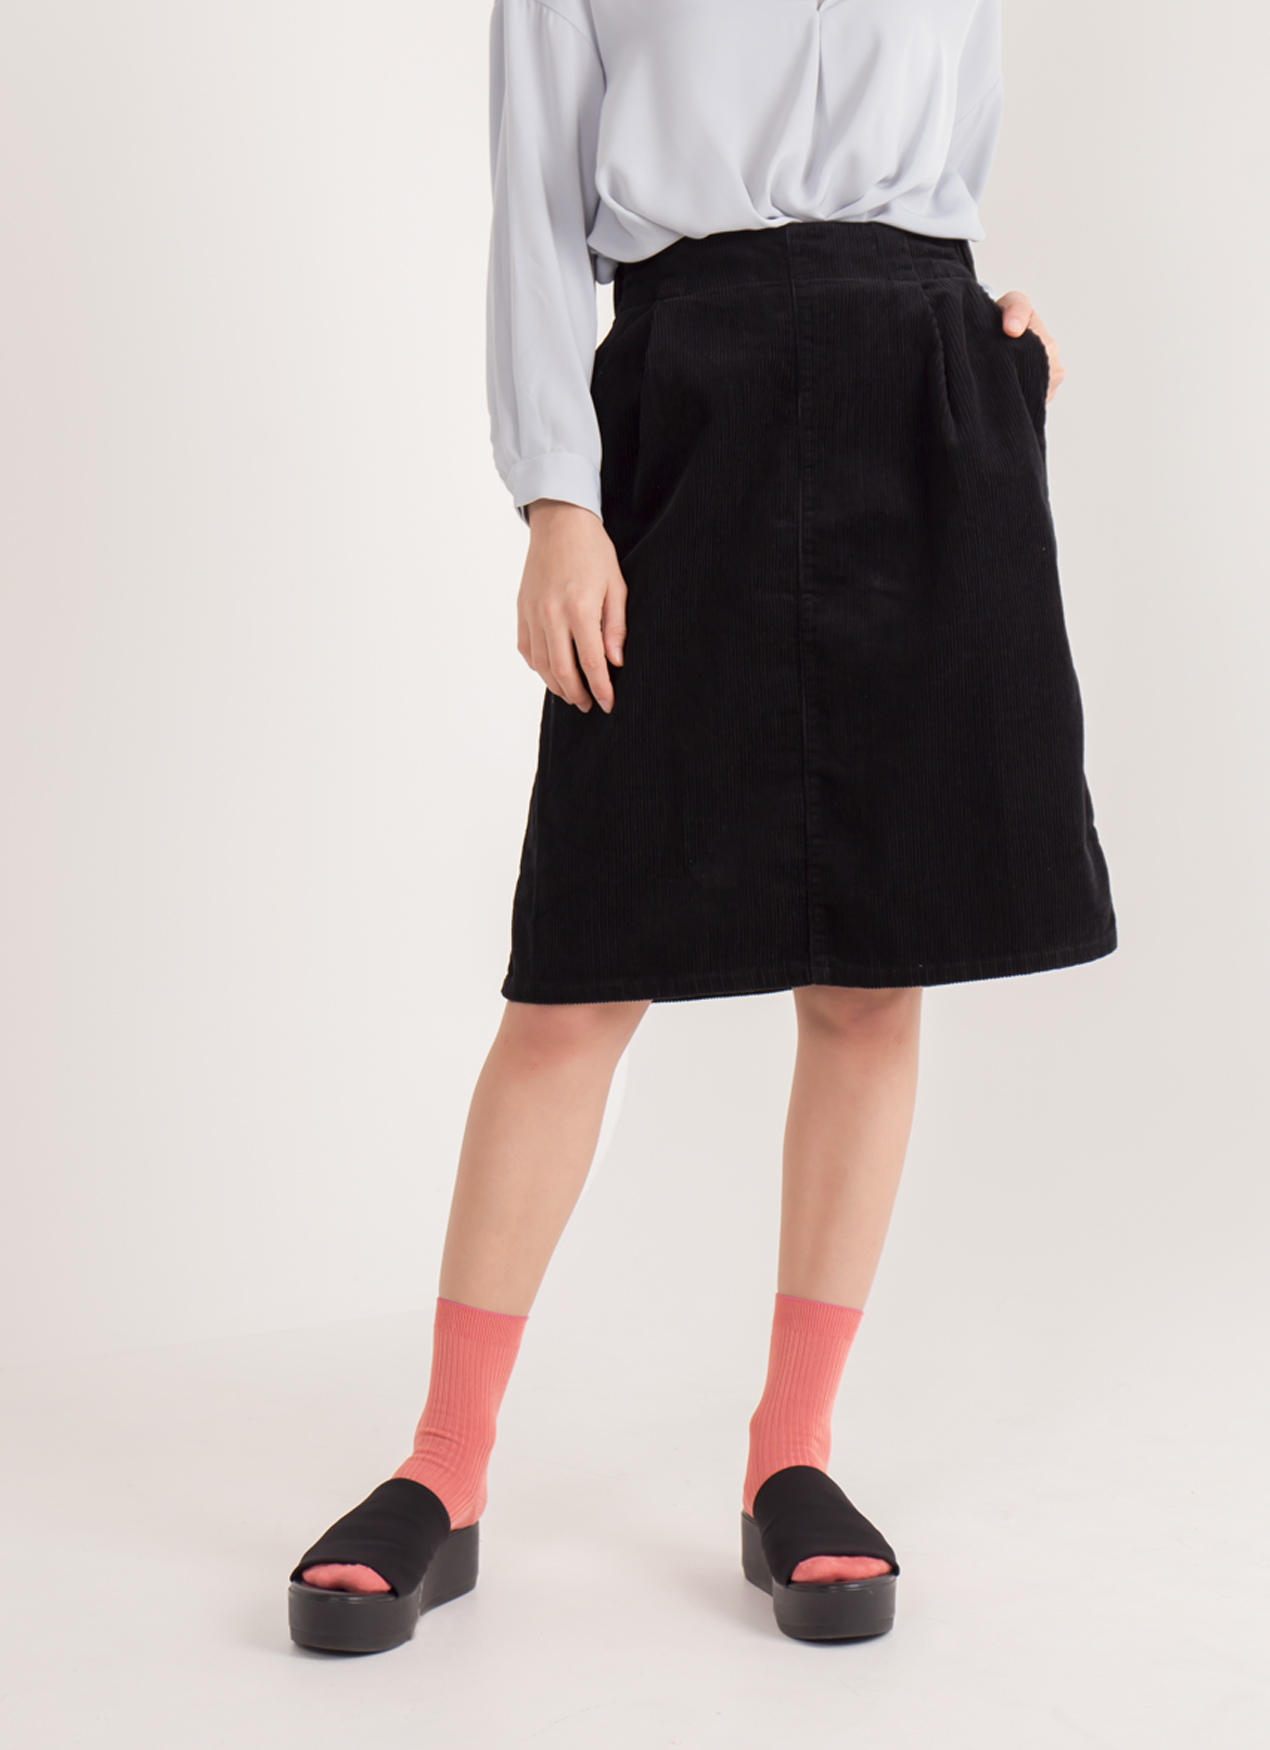 Earth, Music & Ecology Aya Skirt - Black